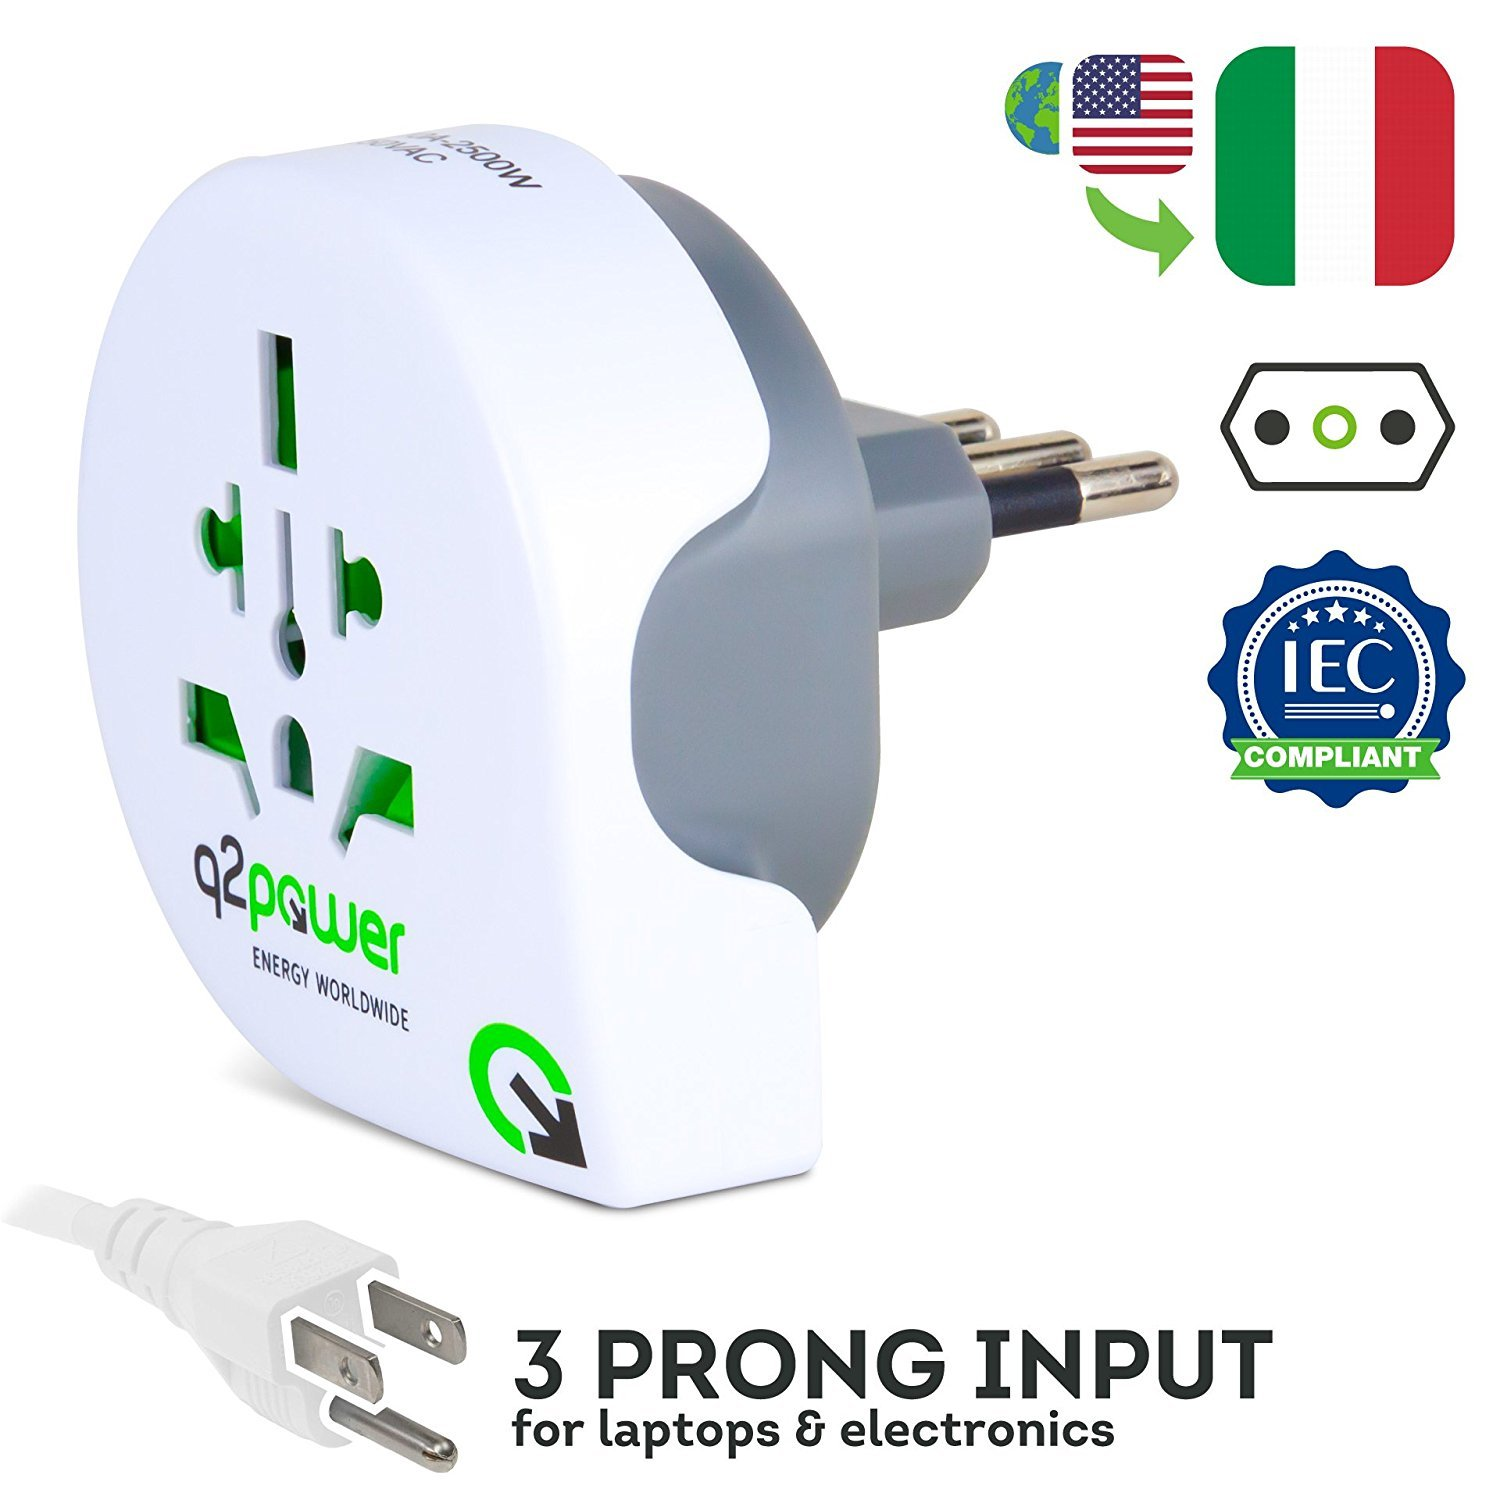 World to Italy Travel Adapter by Q2Power | For Type L Outlets | Grounded & Safe | Works with Laptops, Computers, Smartphone Chargers, Portable Devices | Perfect for International Trips